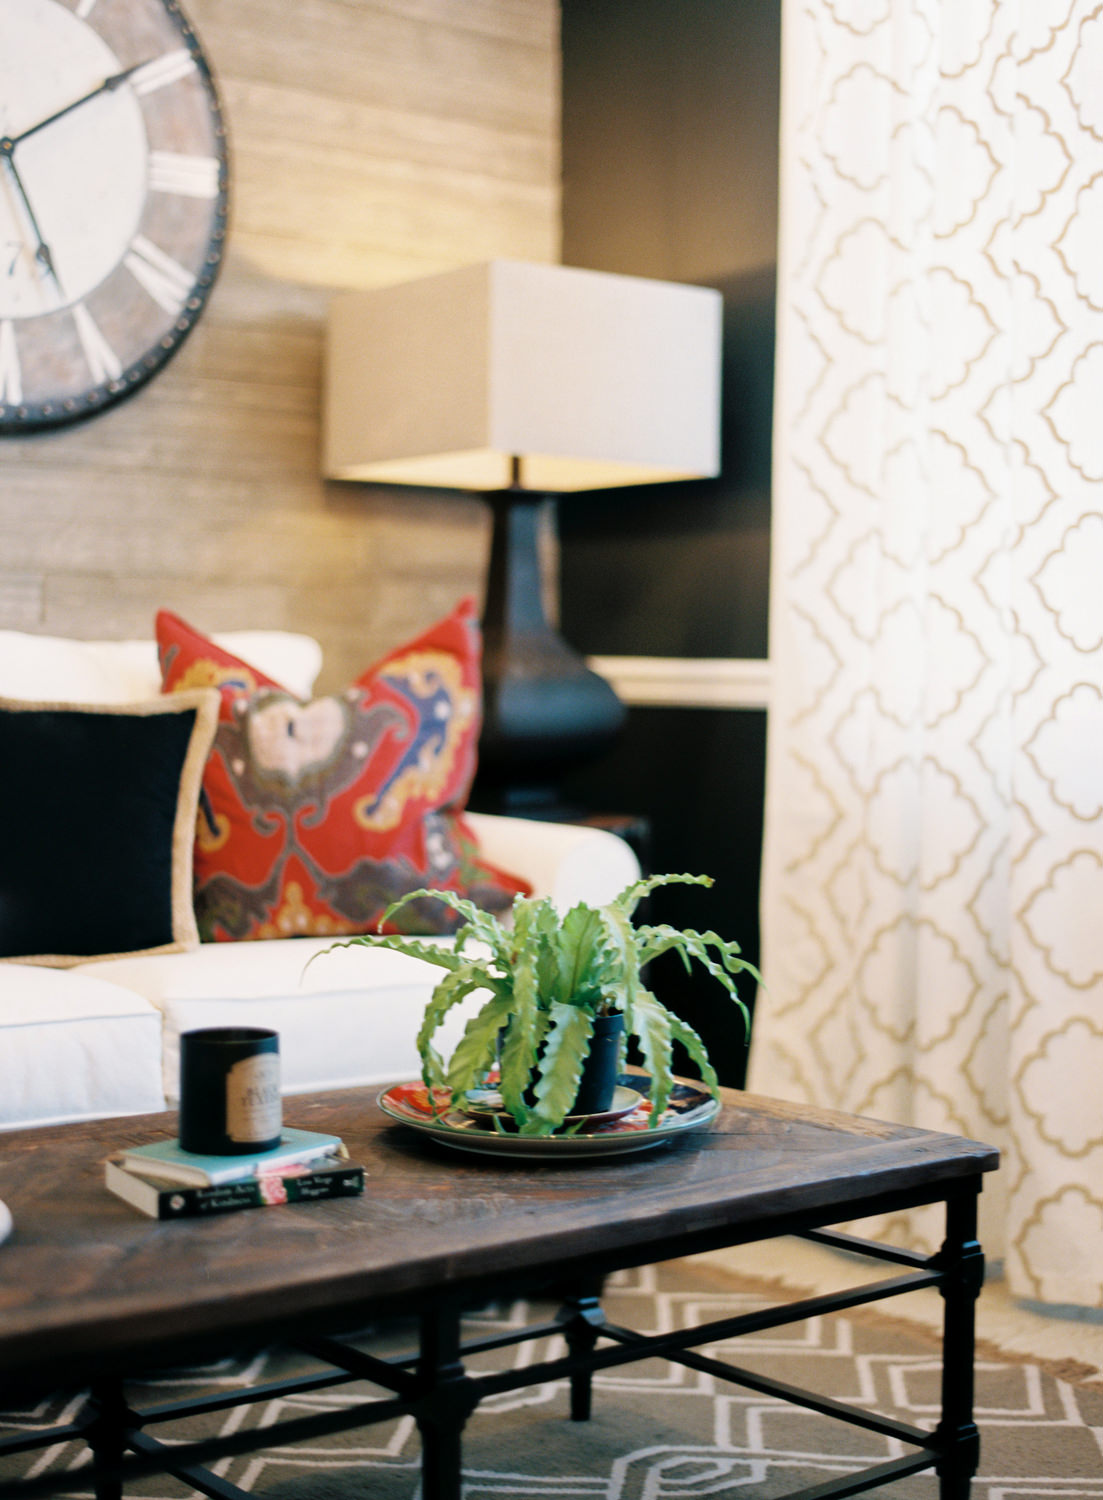 cottrell_photography_interiors-019